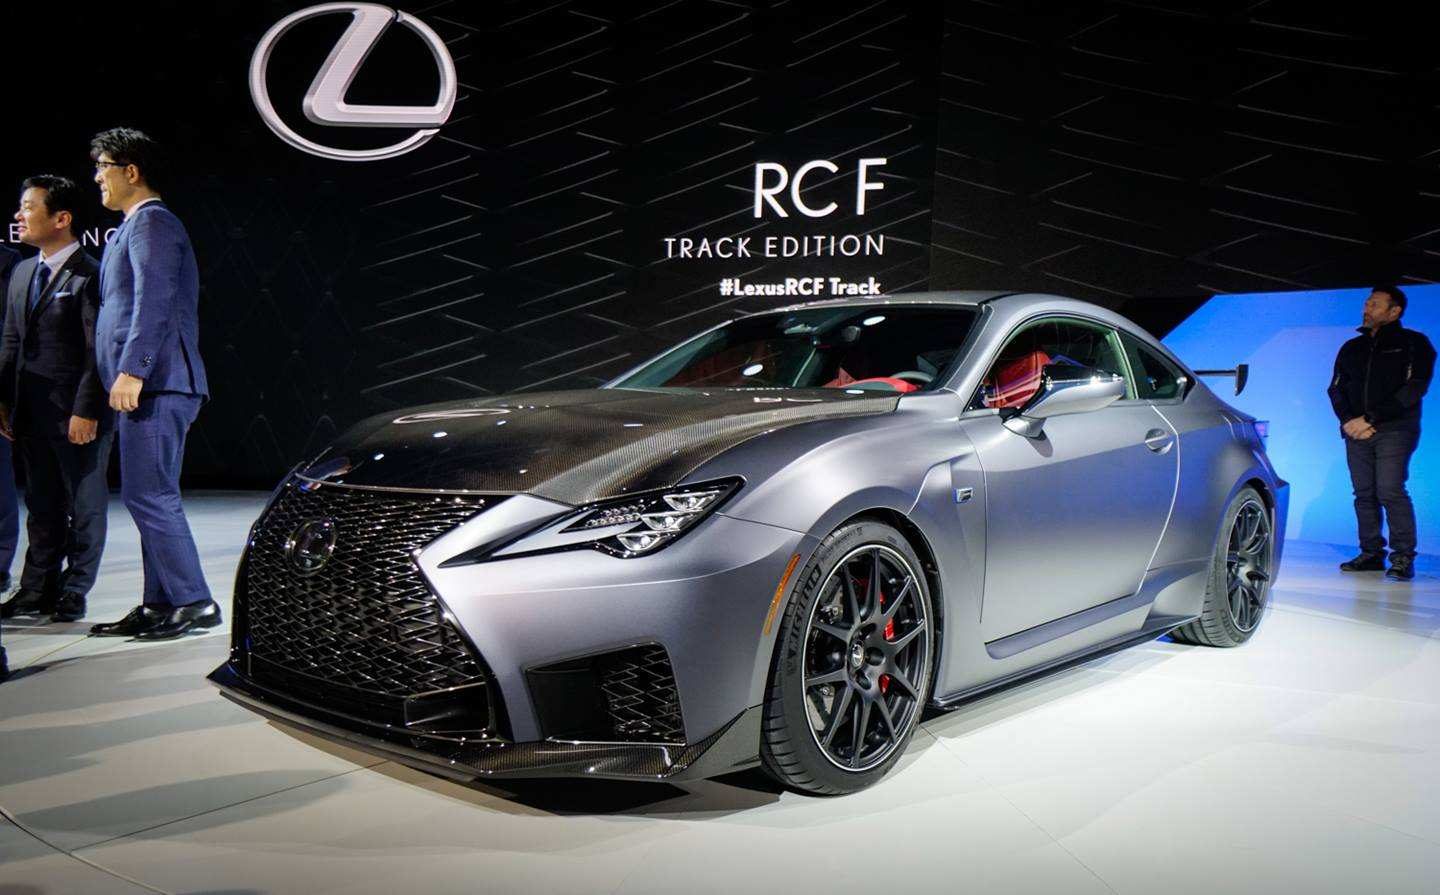 95 All New 2020 Lexus Rc F Track Edition Specs Speed Test for 2020 Lexus Rc F Track Edition Specs